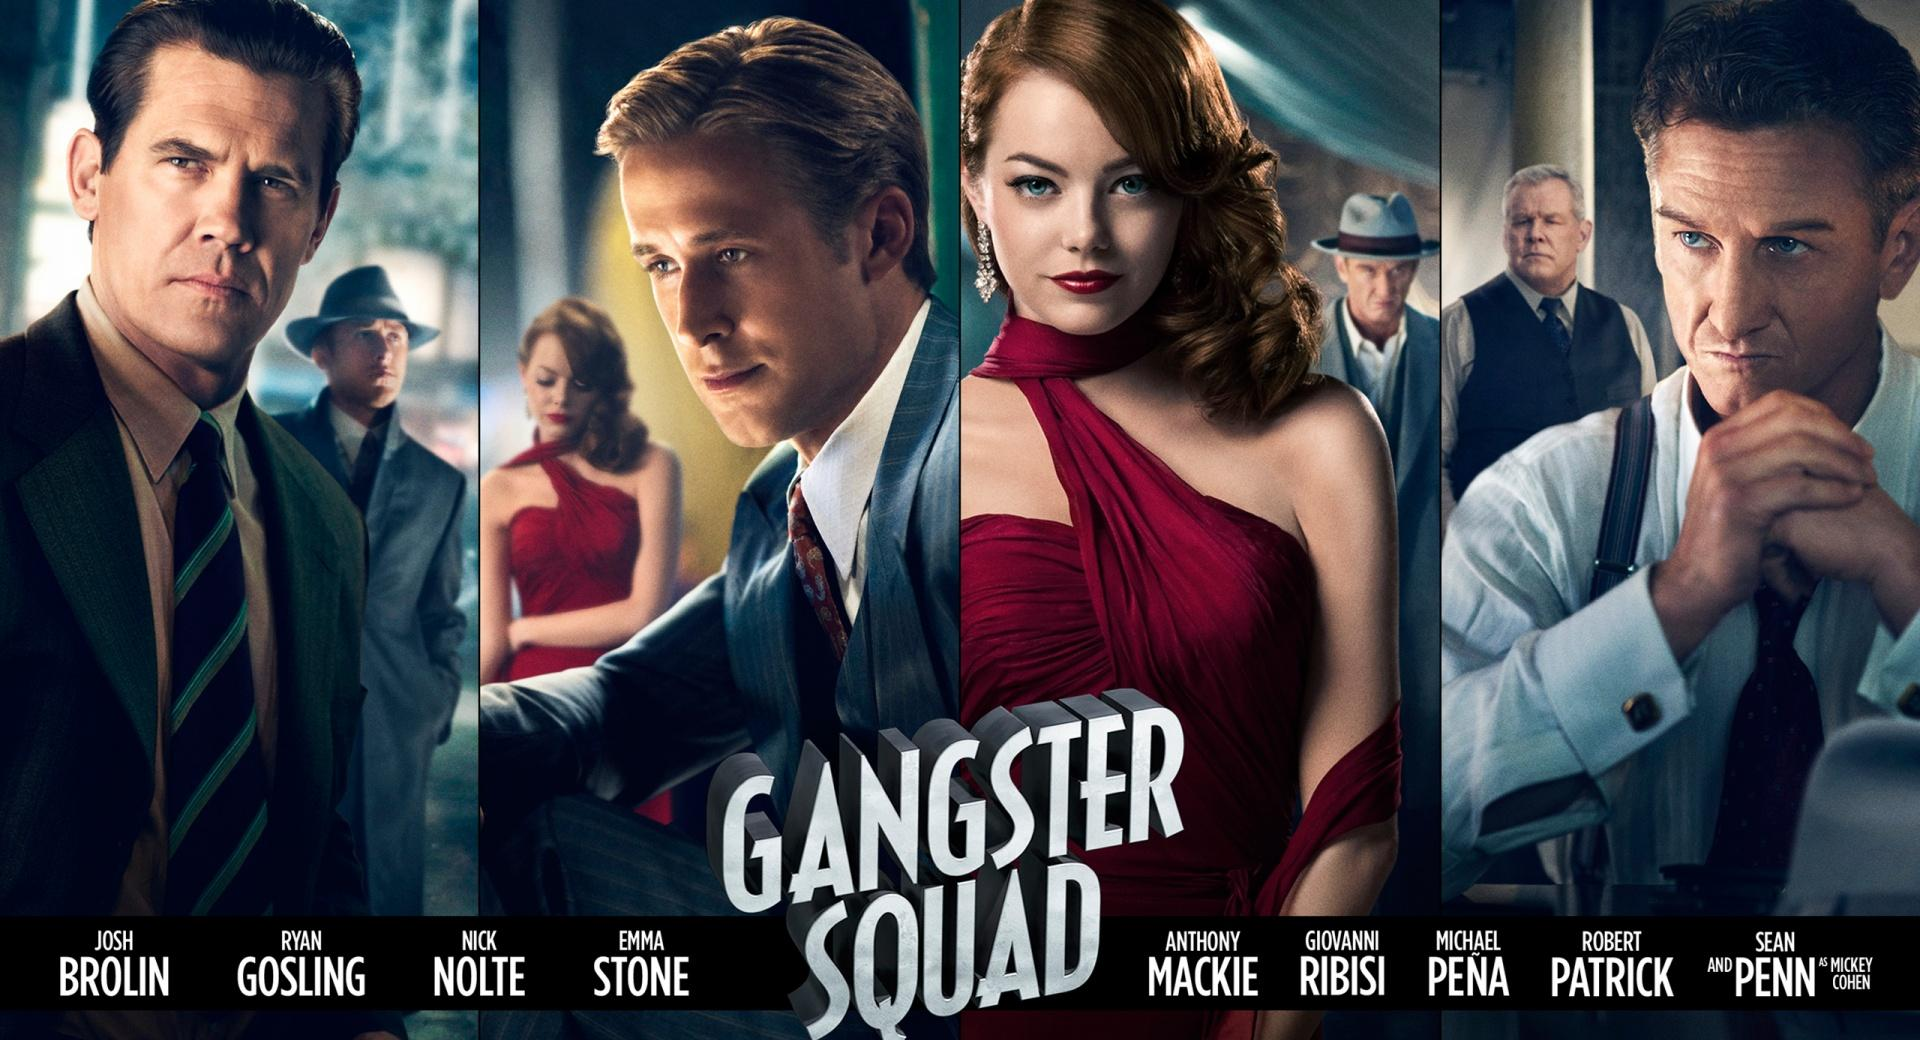 Gangster Squad (2013) wallpapers HD quality